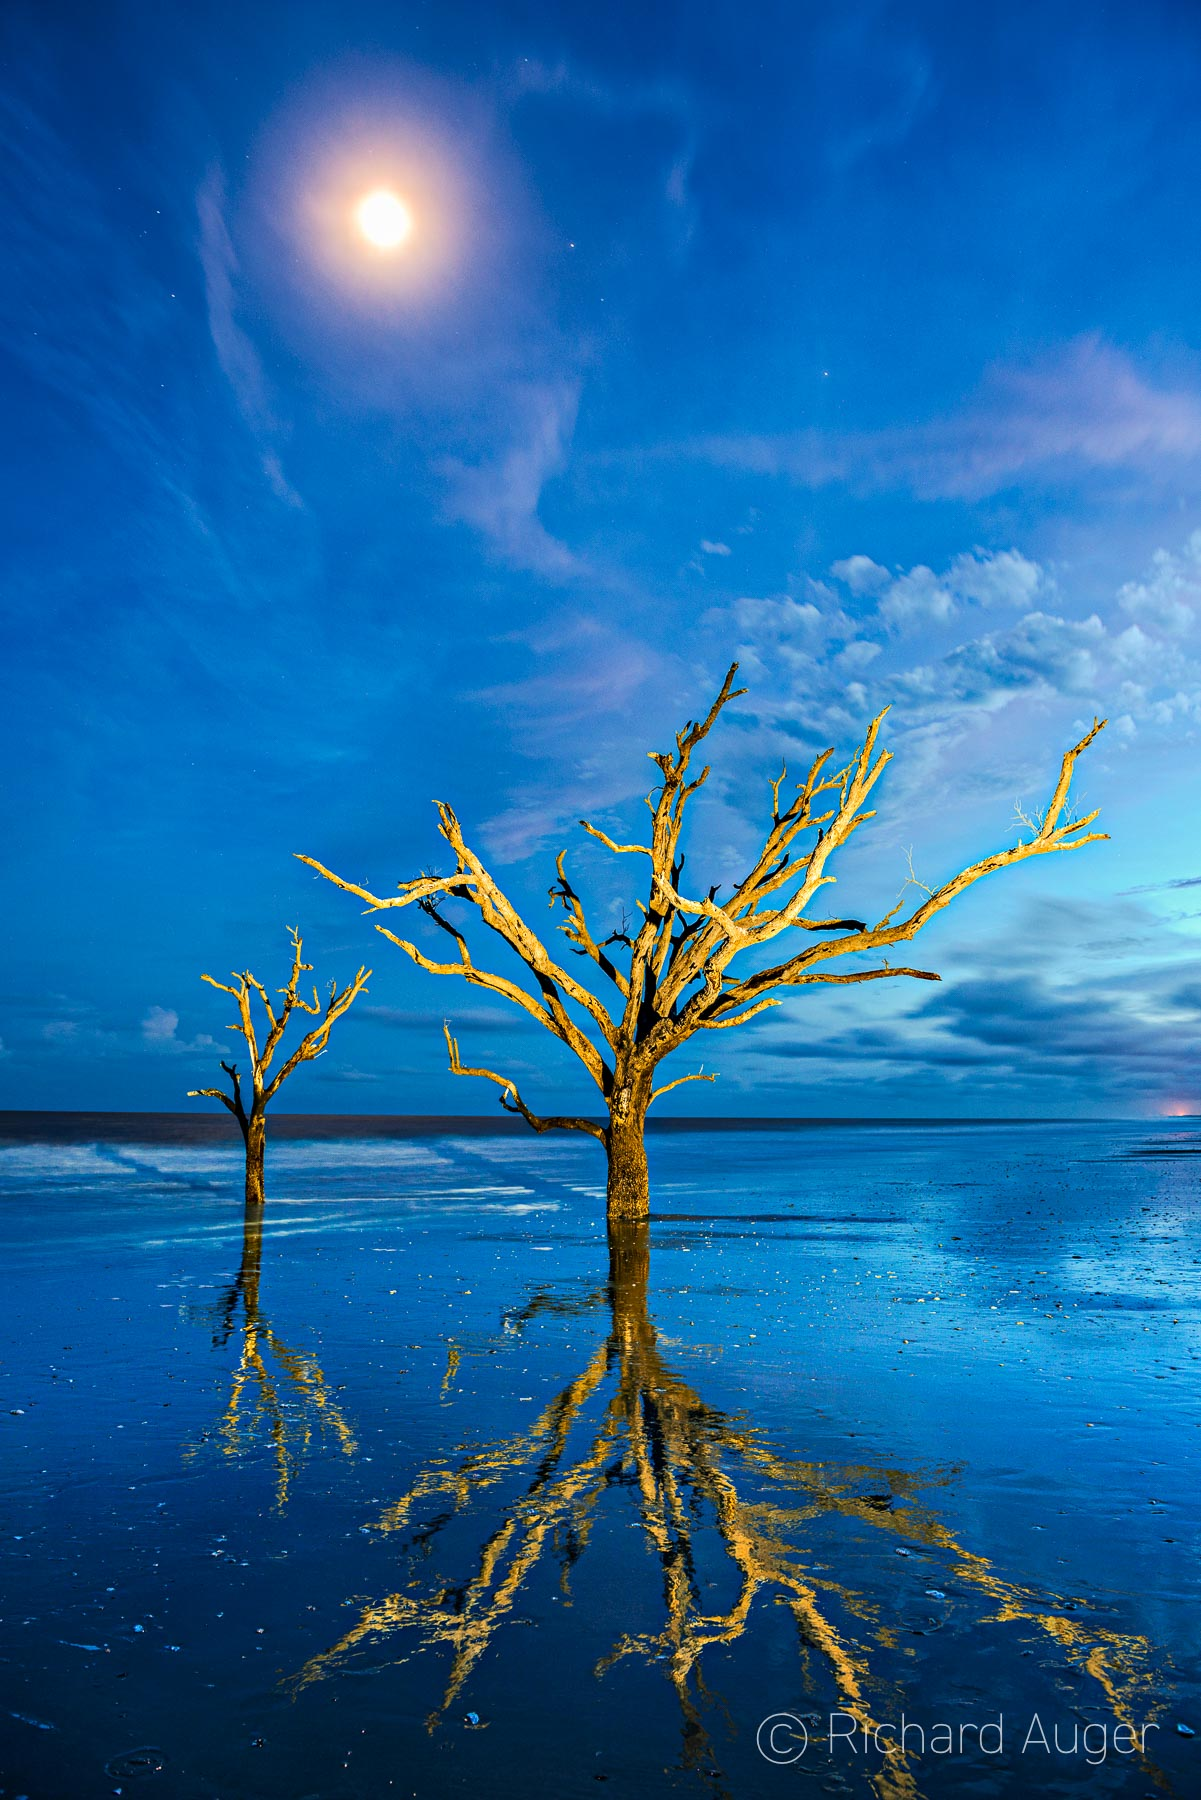 Edisto Island, Botany Bay, South Carolina, Driftwood, Night, Lighting, Reflections, Moon